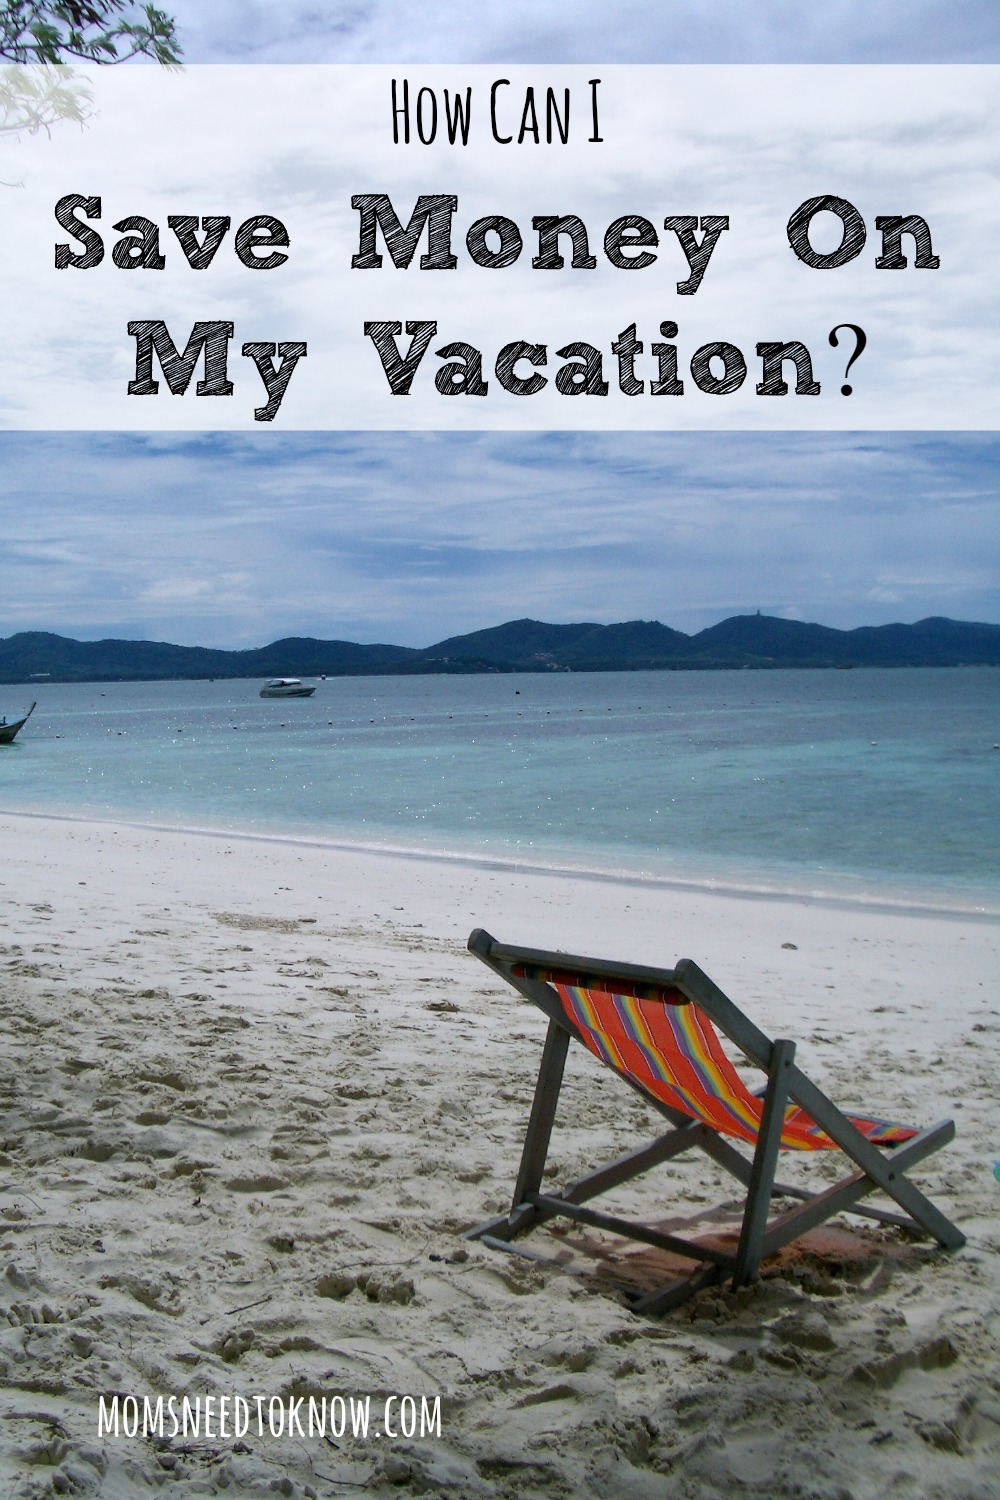 With a little planning, it can be easy to save money on vacation. There are easy ways to cut costs without cutting the fun - these tips will help you do it!